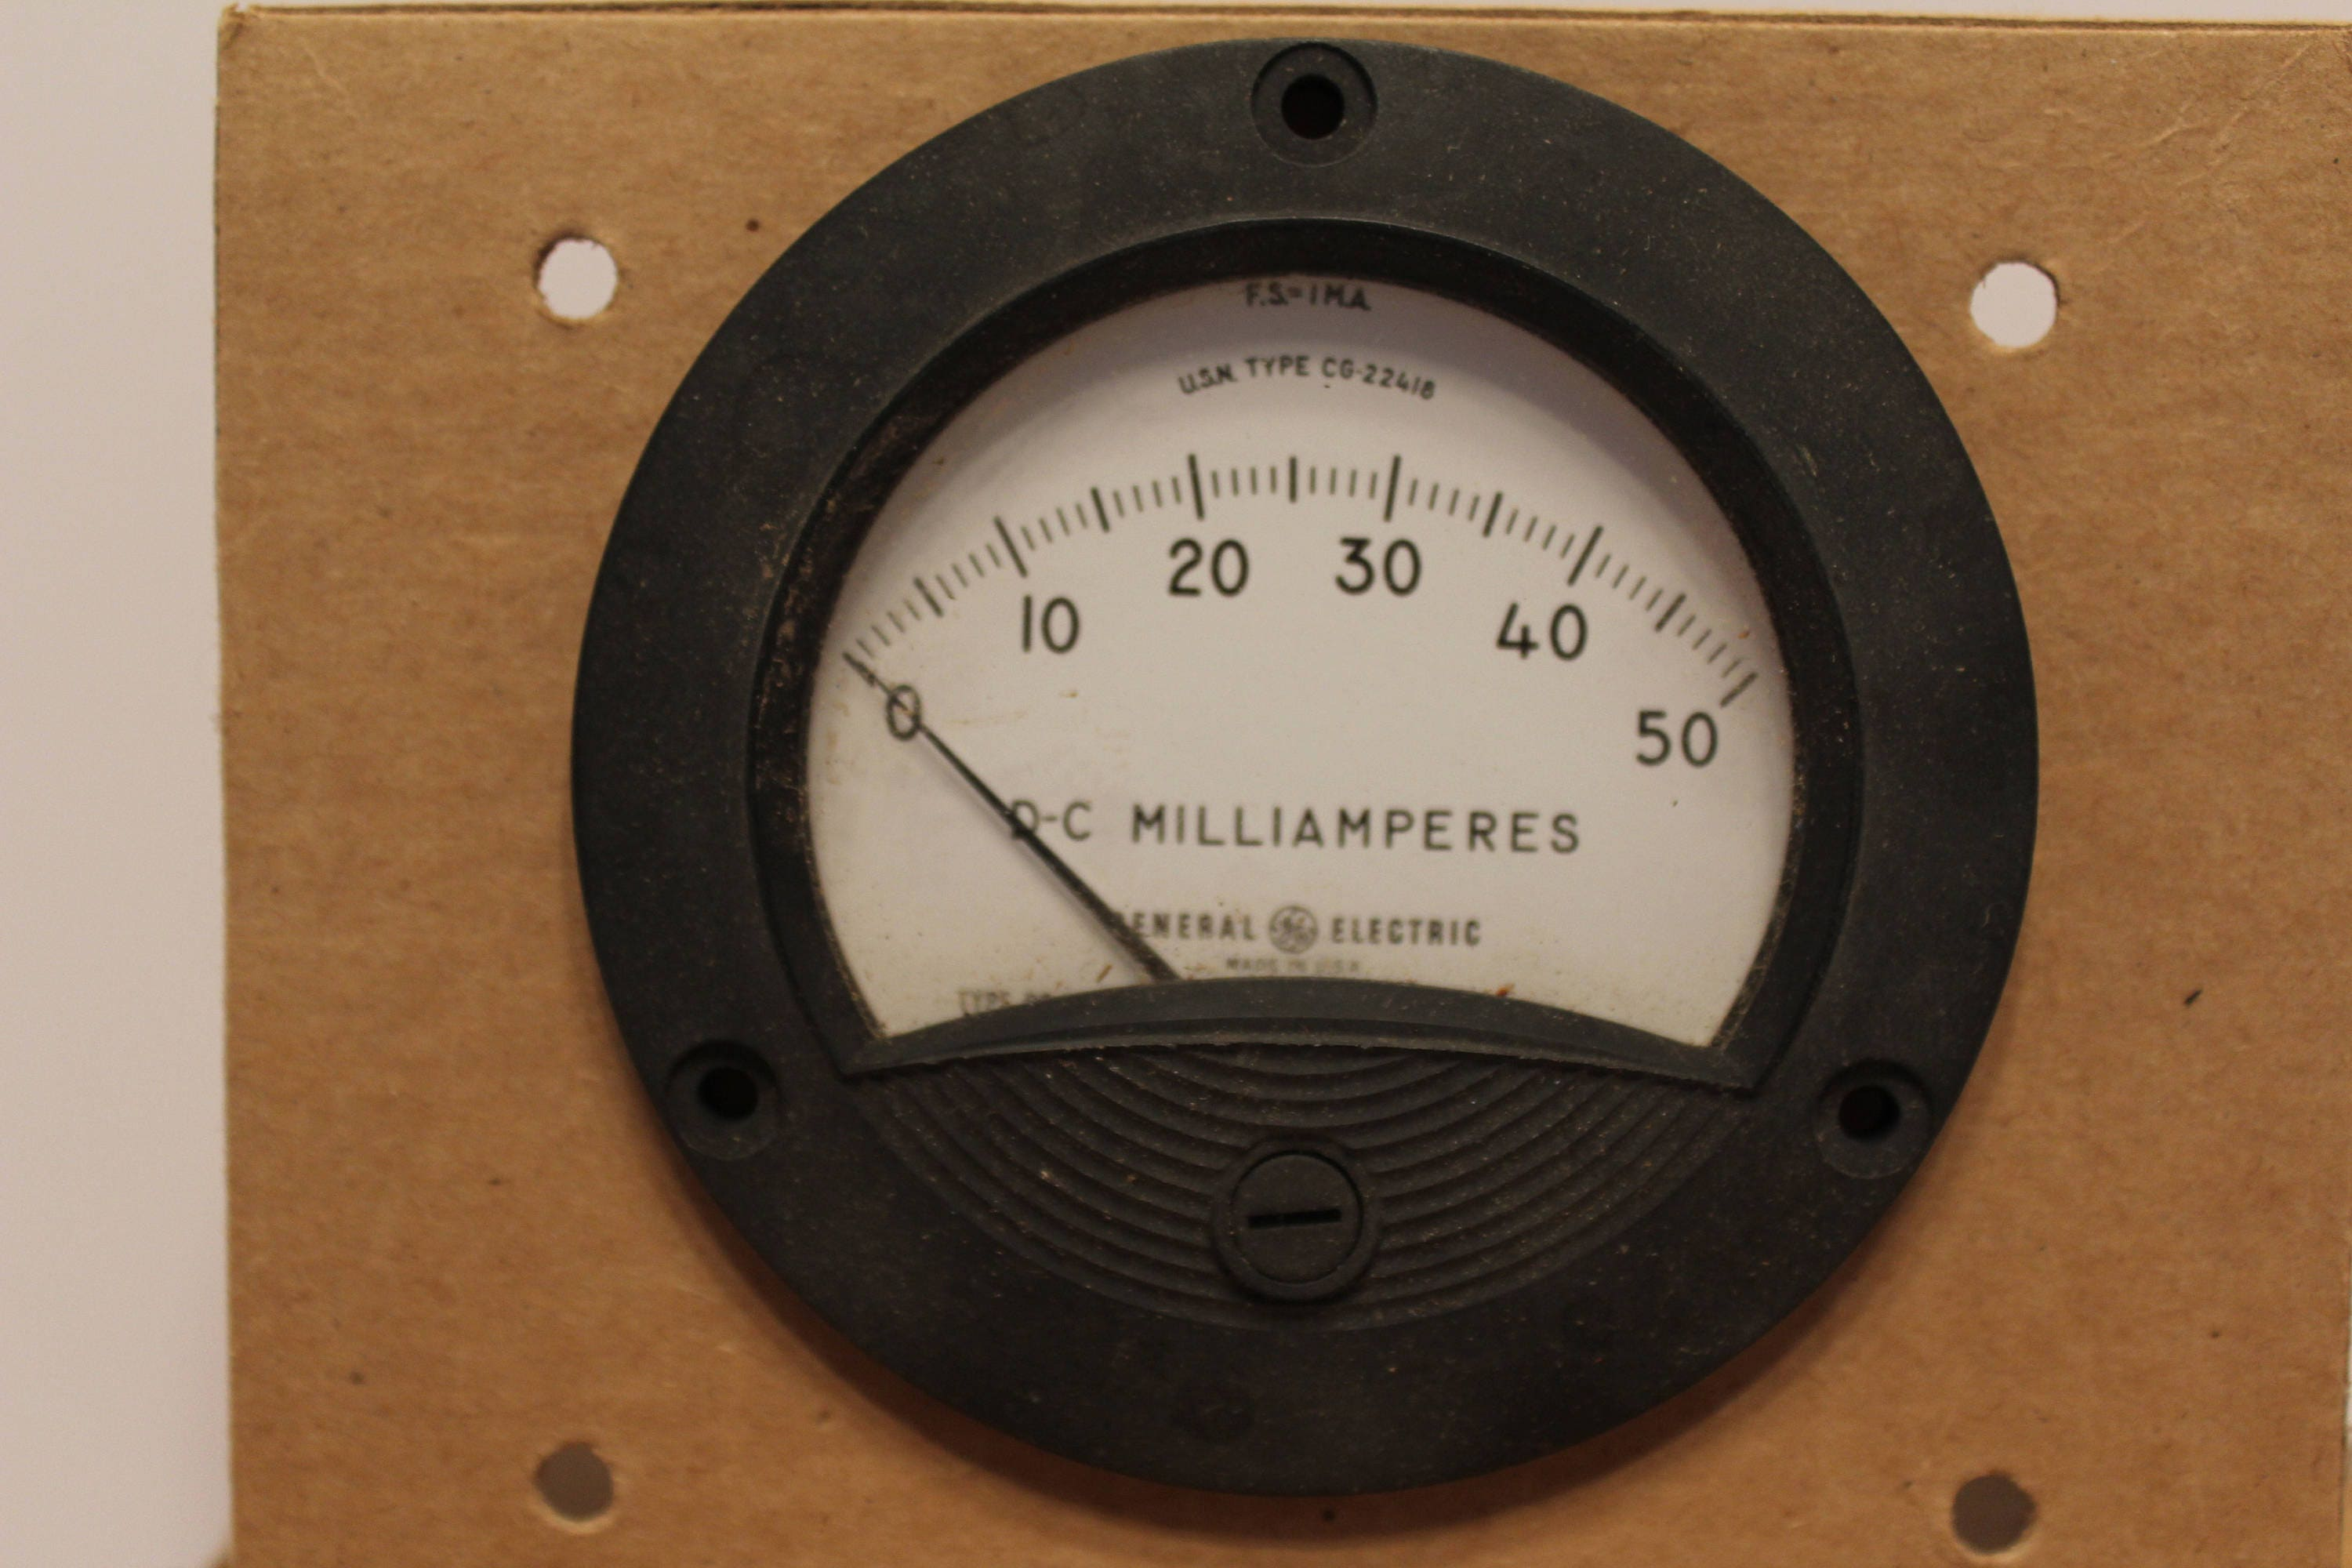 Ammeter Dc Milliamperes 1950s Nos In Original Box With Etsy Fuse